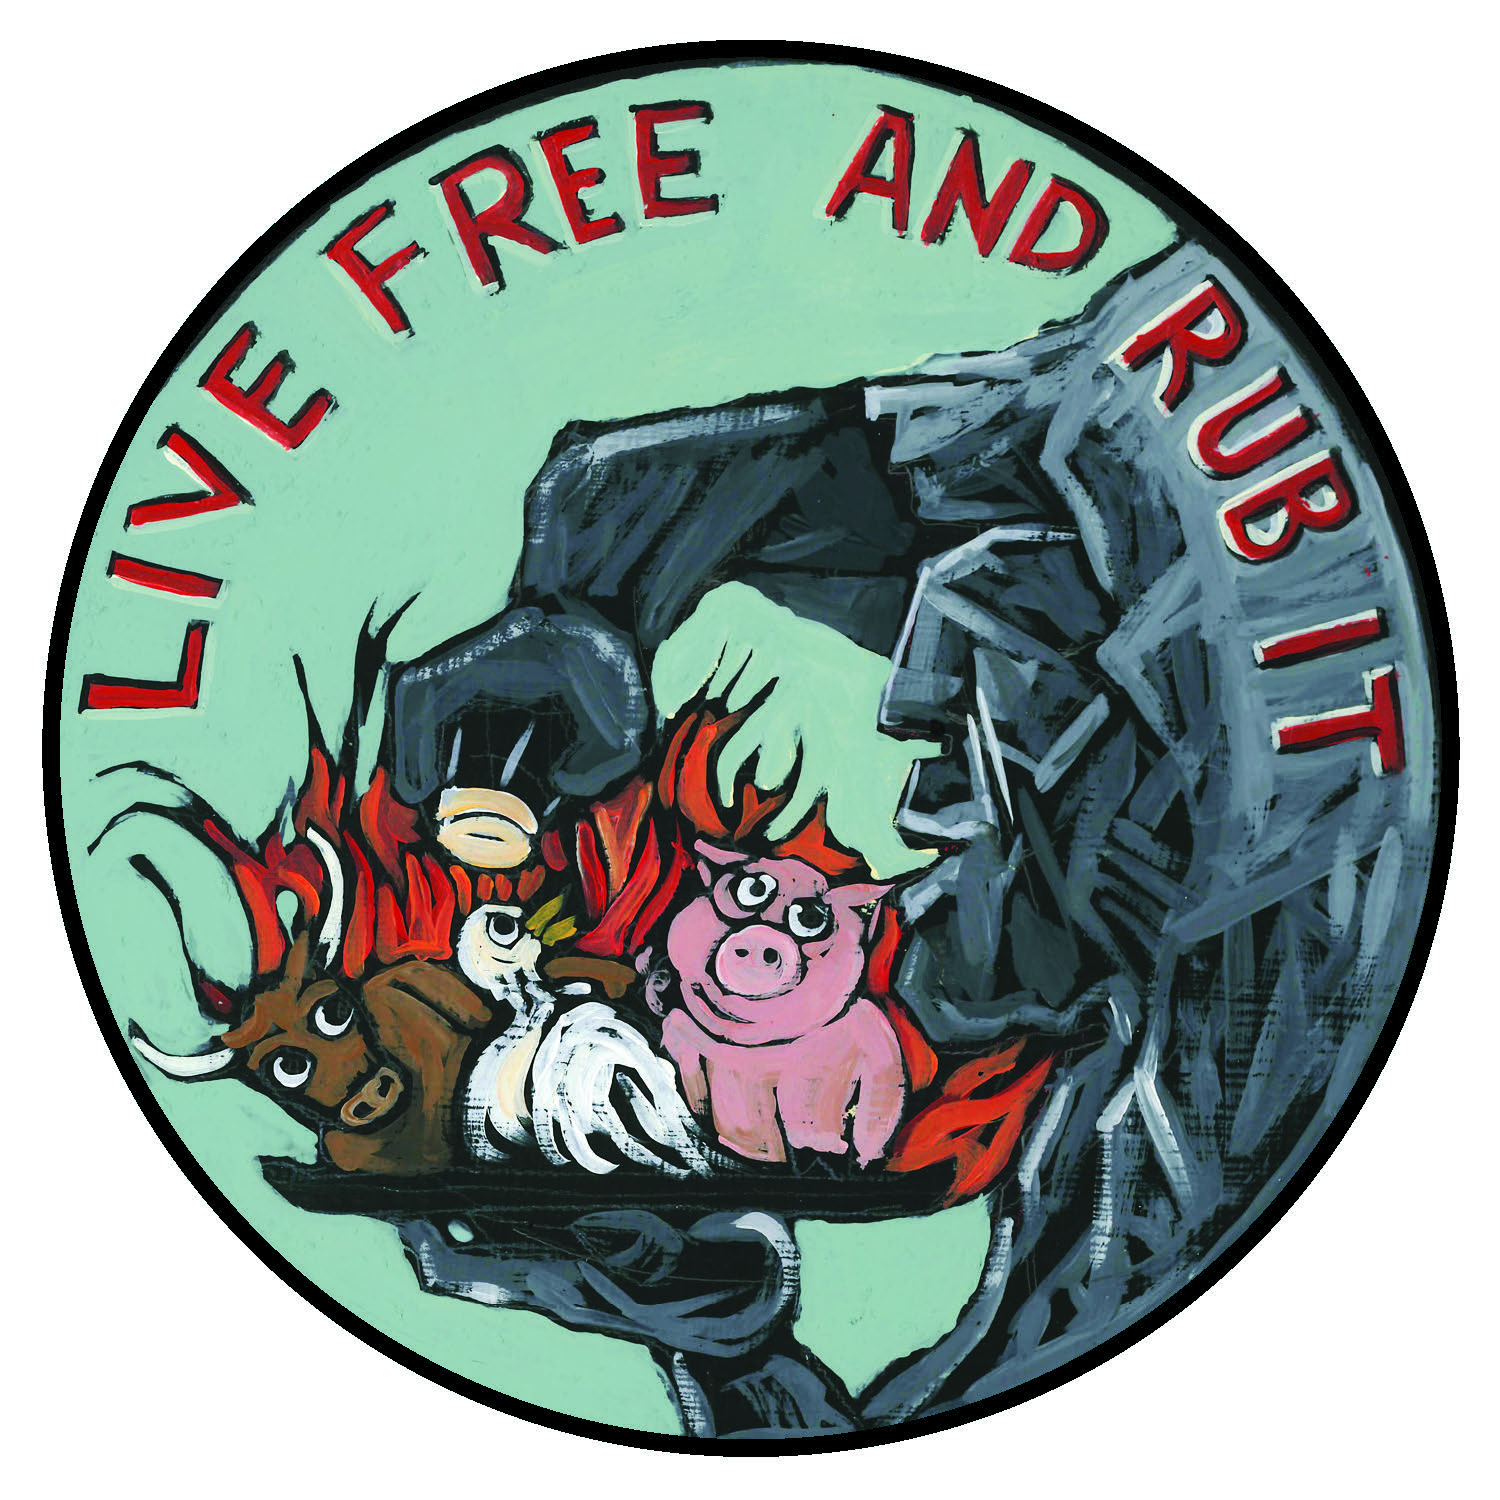 Live Free and Rub It LLC